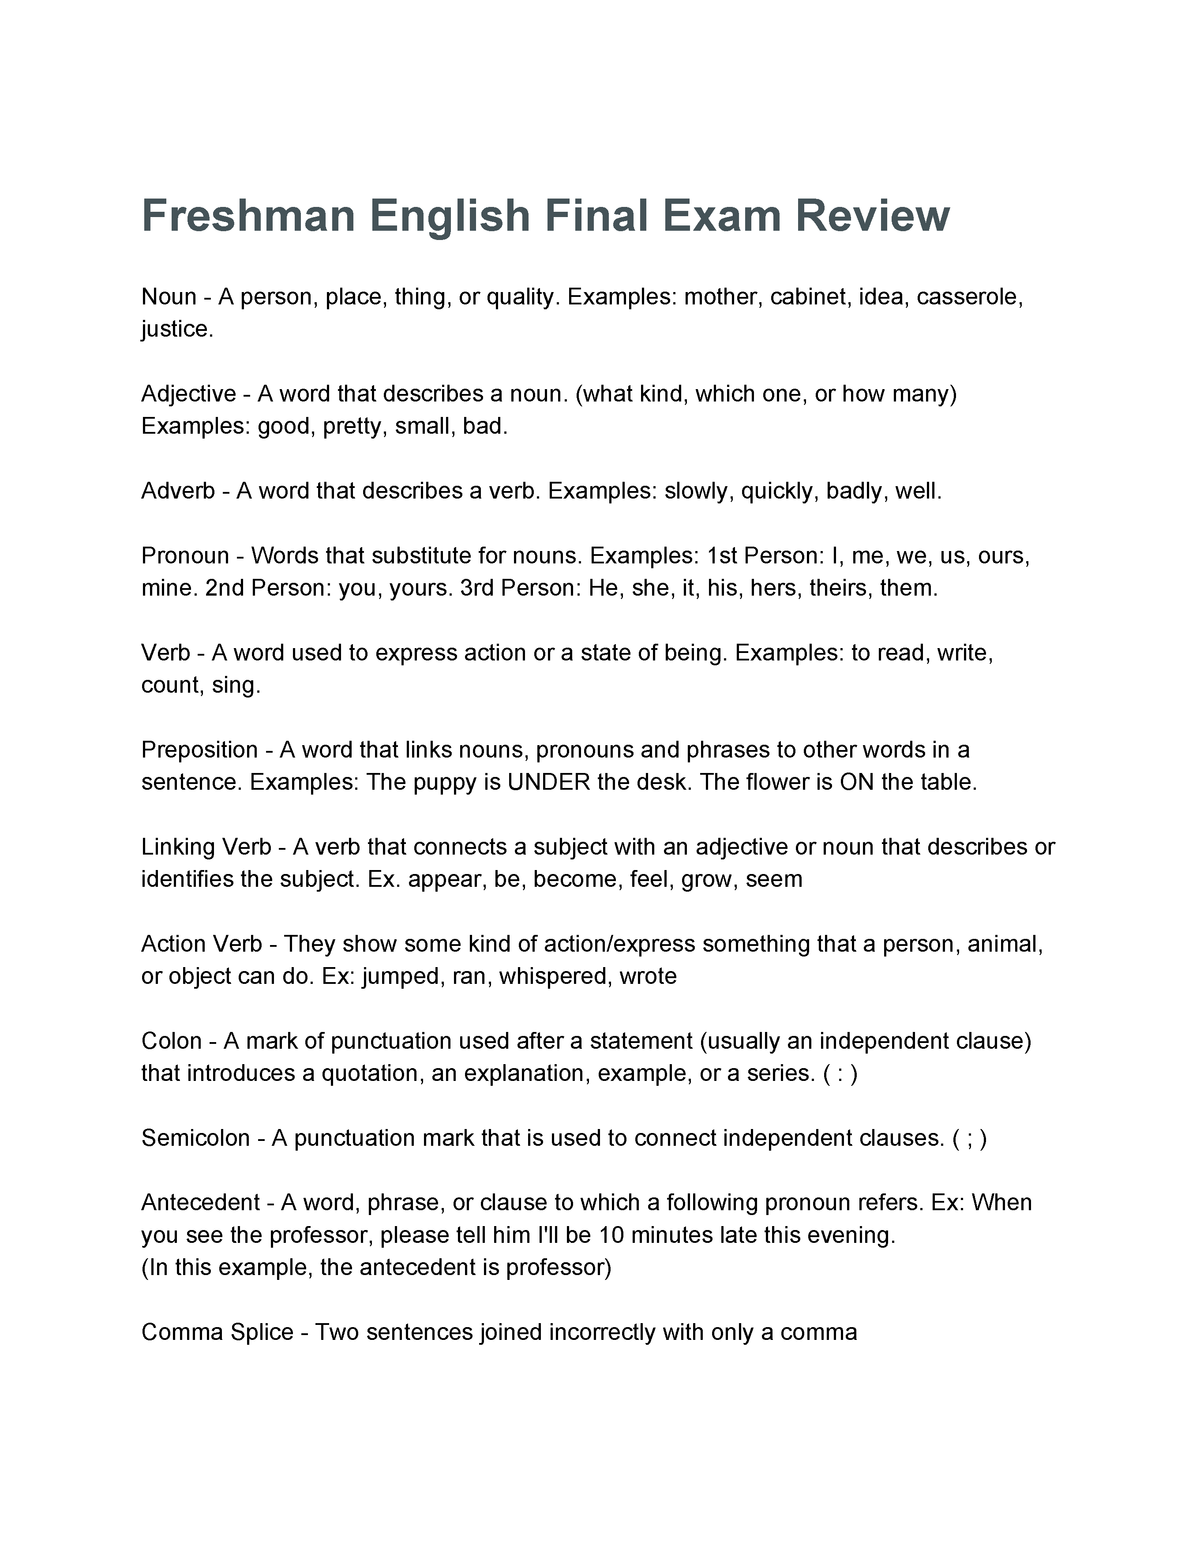 Exam May 1 Spring 2018, questions and answers - ENGL 2030